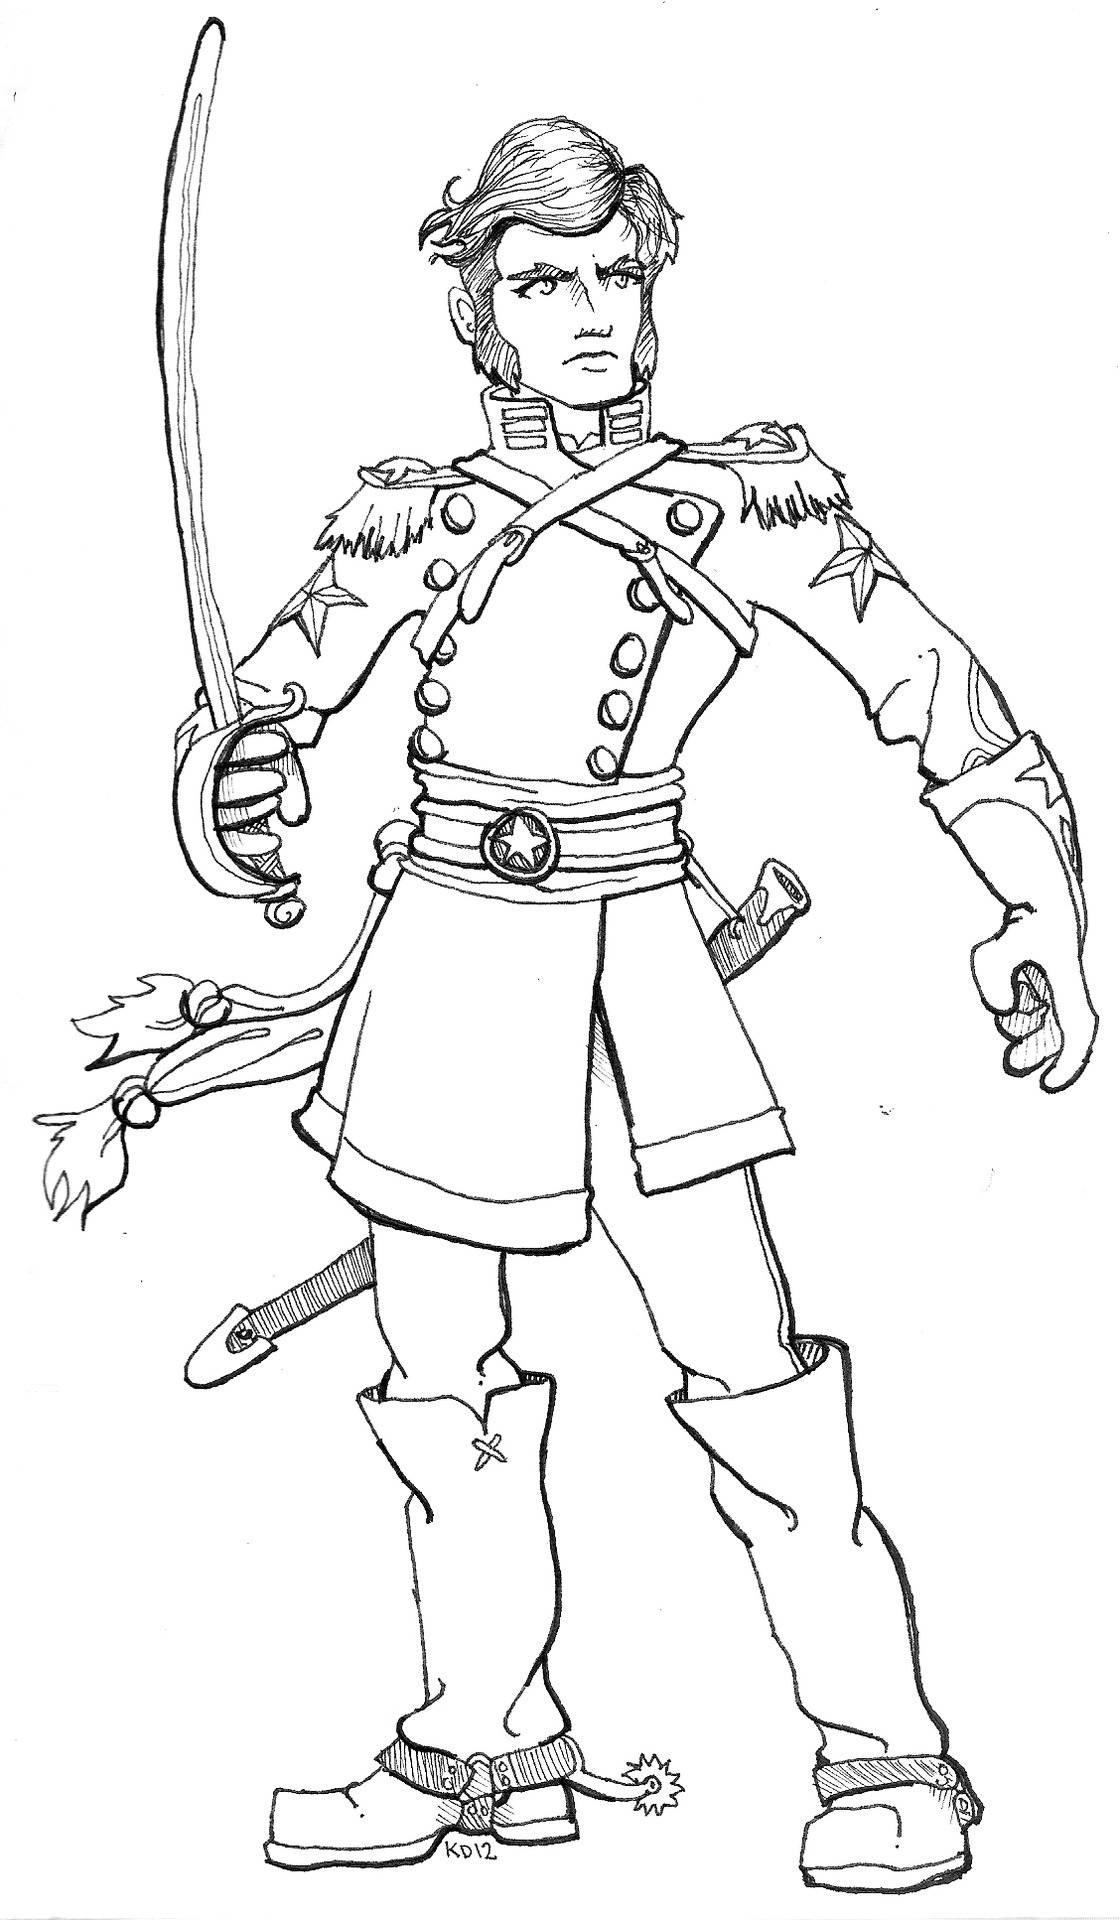 coloring page also civil war soldier coloring page besides civil war